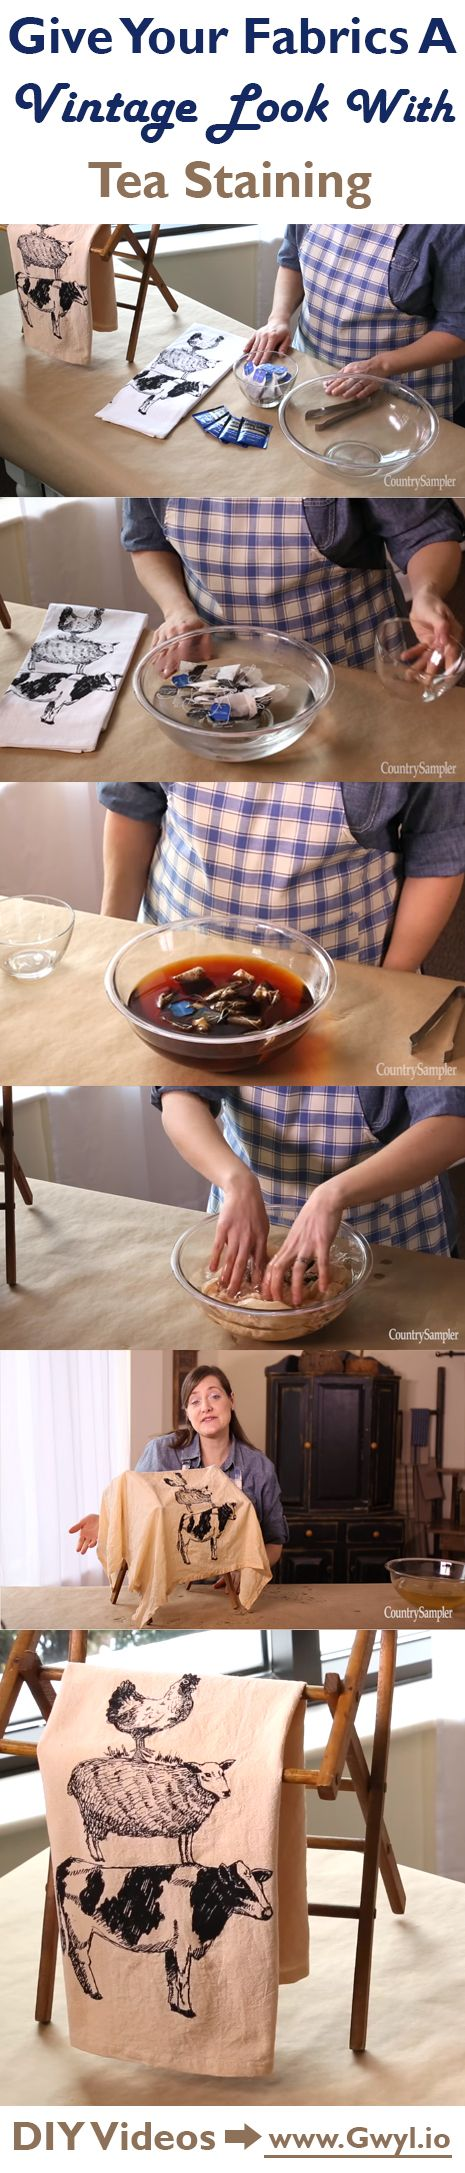 This is an easy tutorial on how to stain fabric using tea!  | GIve Your Fabrics A Vintage Look With Tea Staining | Watch video and see full written instructions here:  http://gwyl.io/give-fabrics-vintage-look-tea-staining/